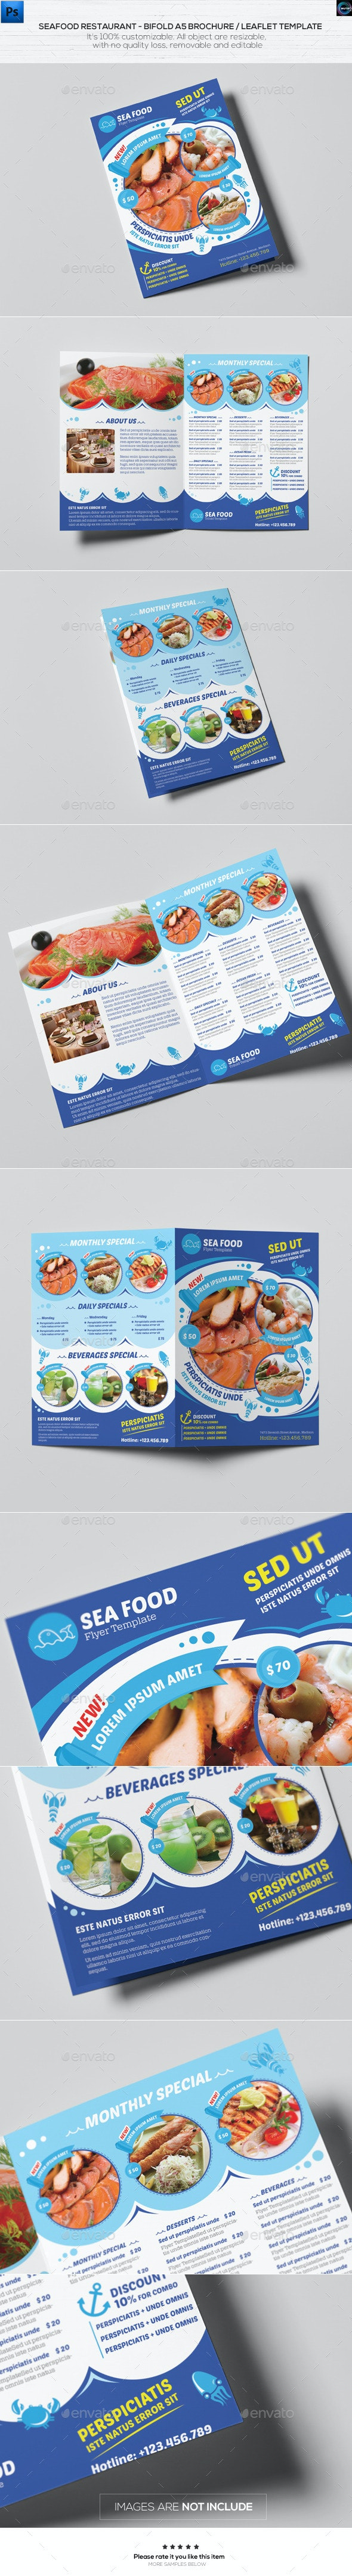 Seafood Restaurant-A5 Brochure/Leaflet Template - Catalogs Brochures